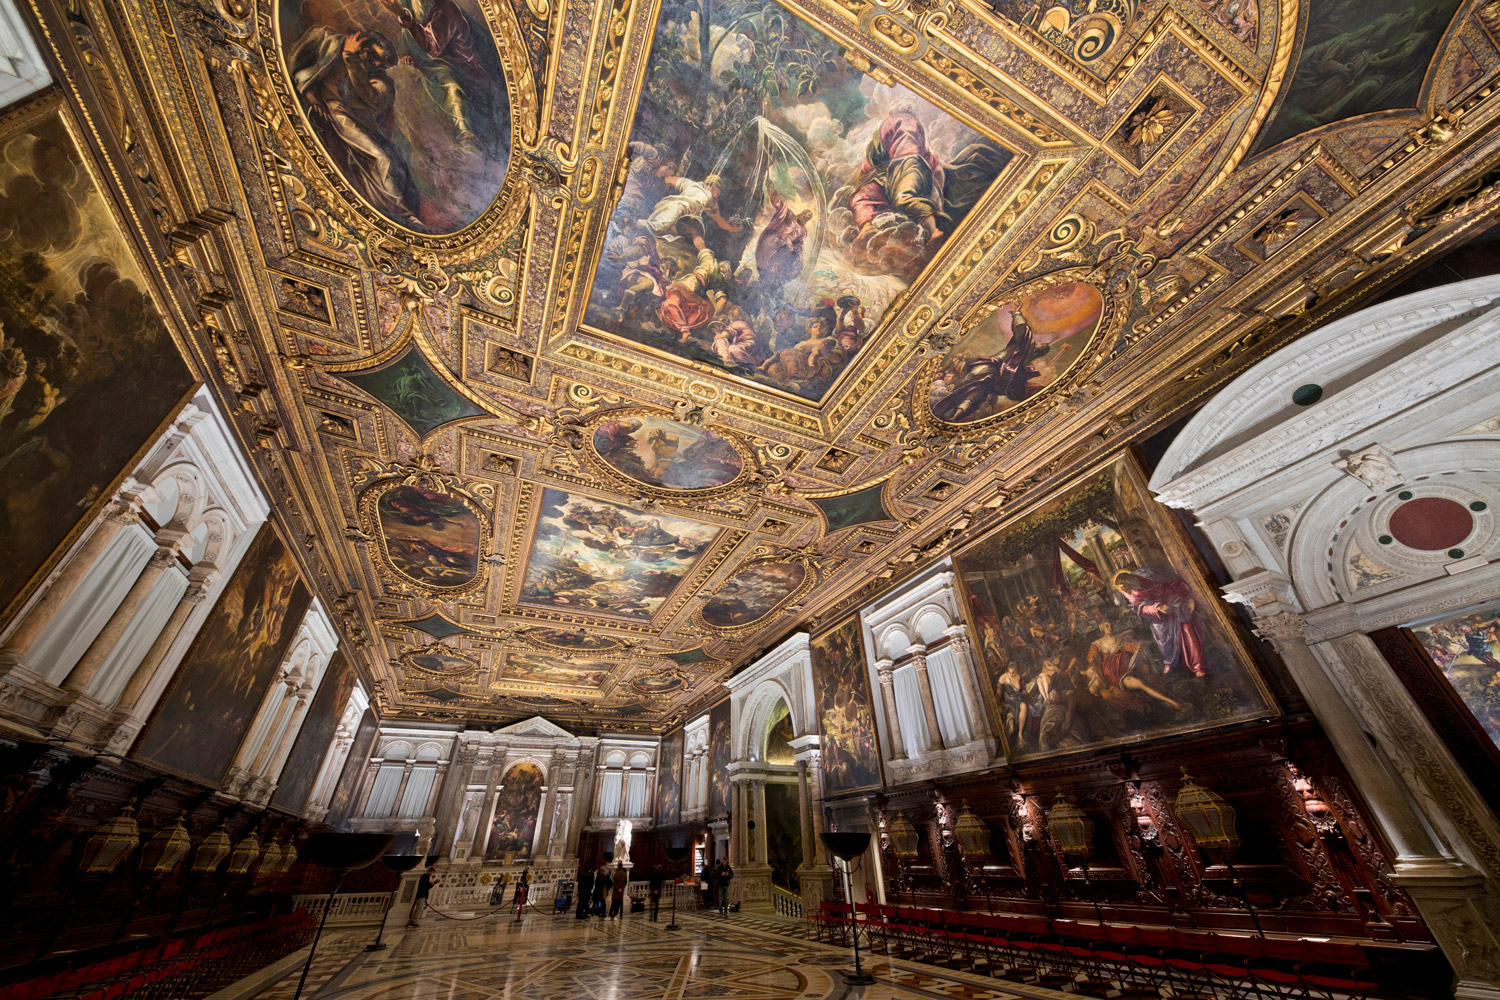 Light and artistic heritage: Tintoretto for Millennials